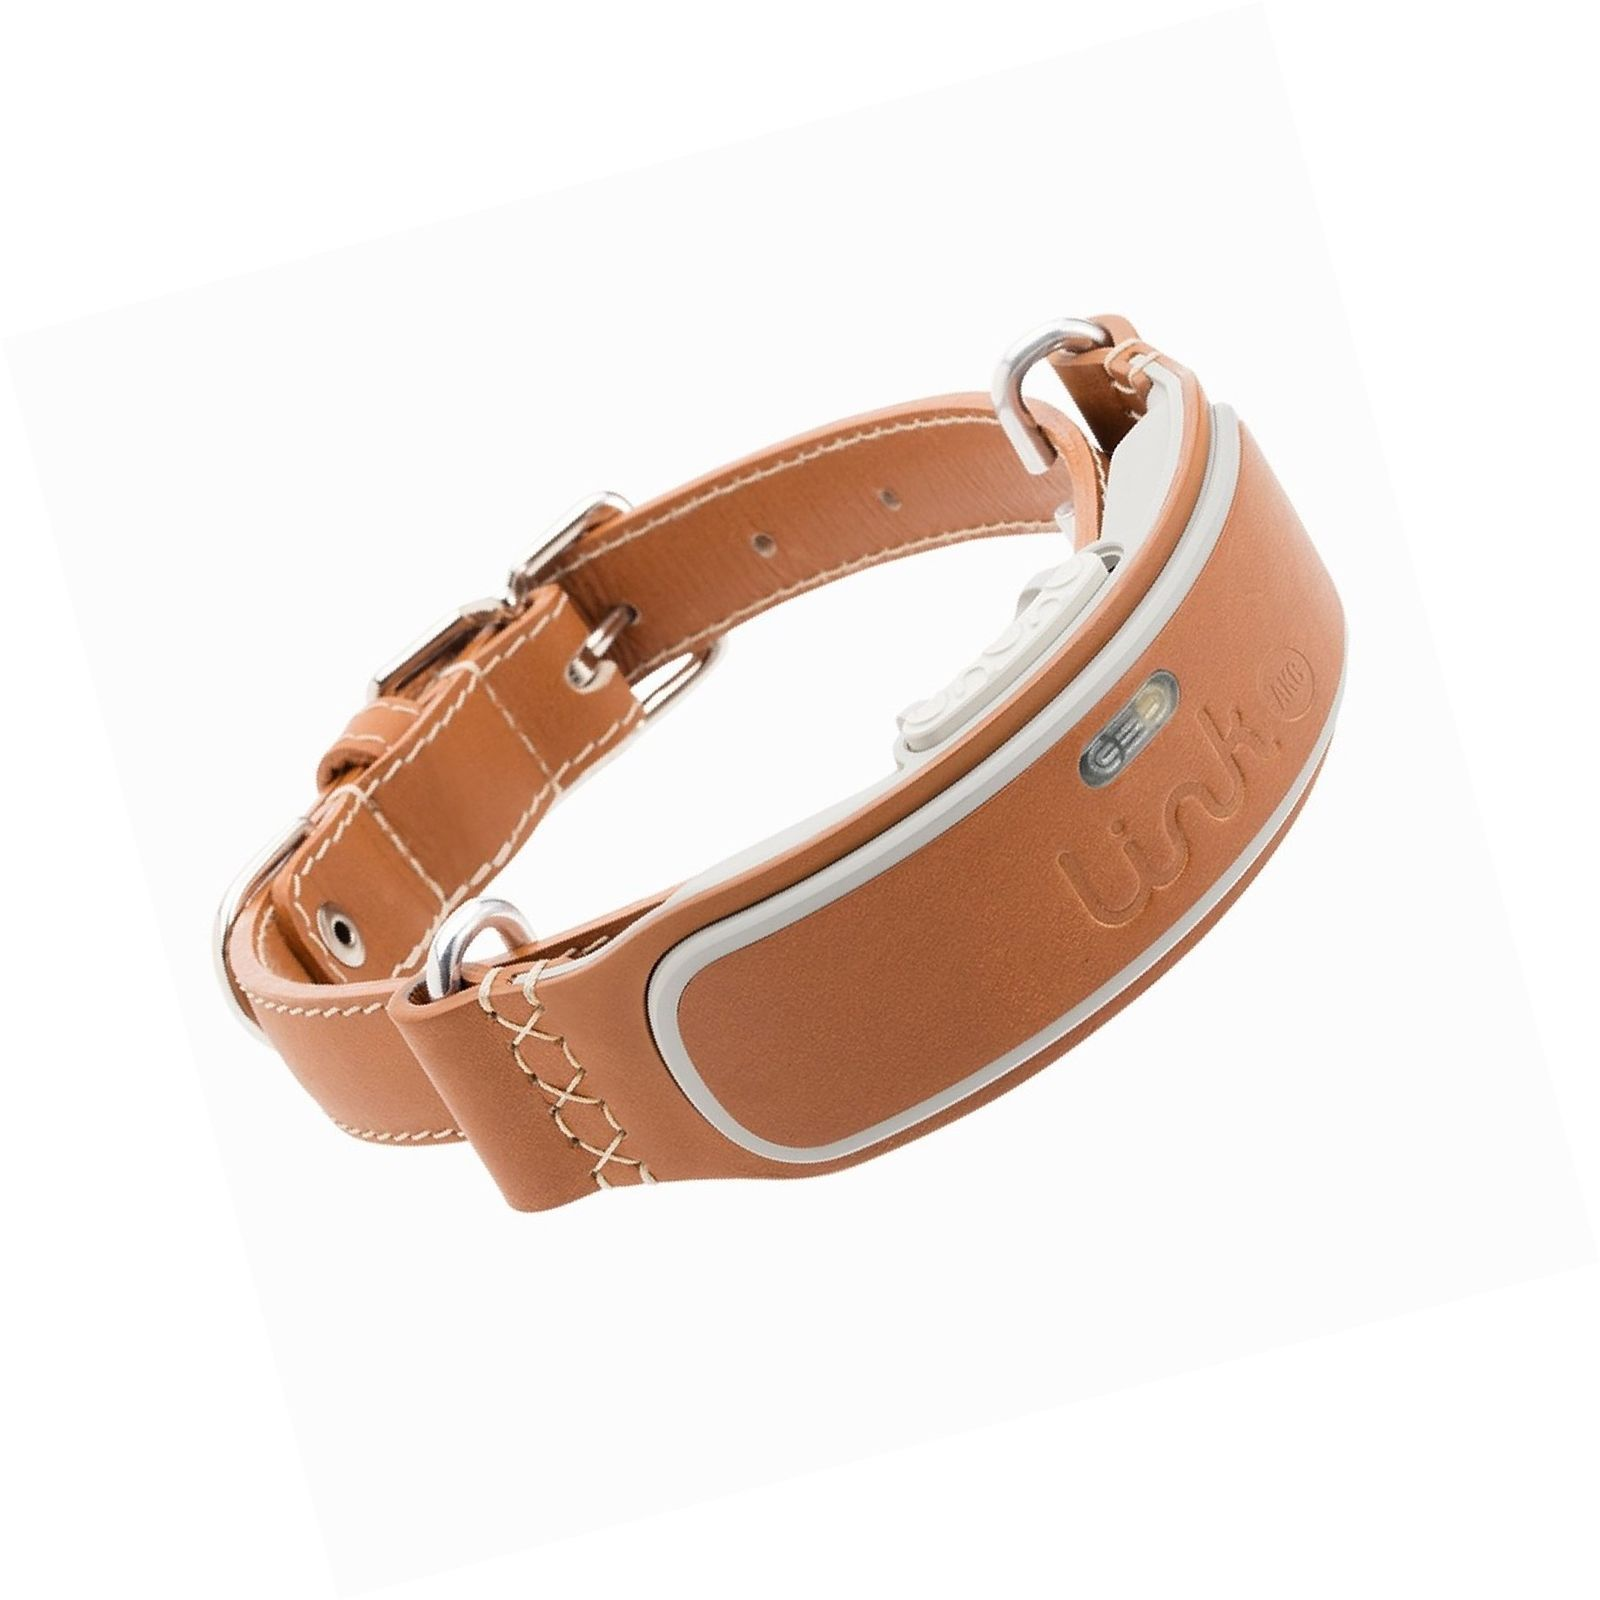 Link AKC Smart GPS Dog Collar - Classic Leather or Sports Device Only Small